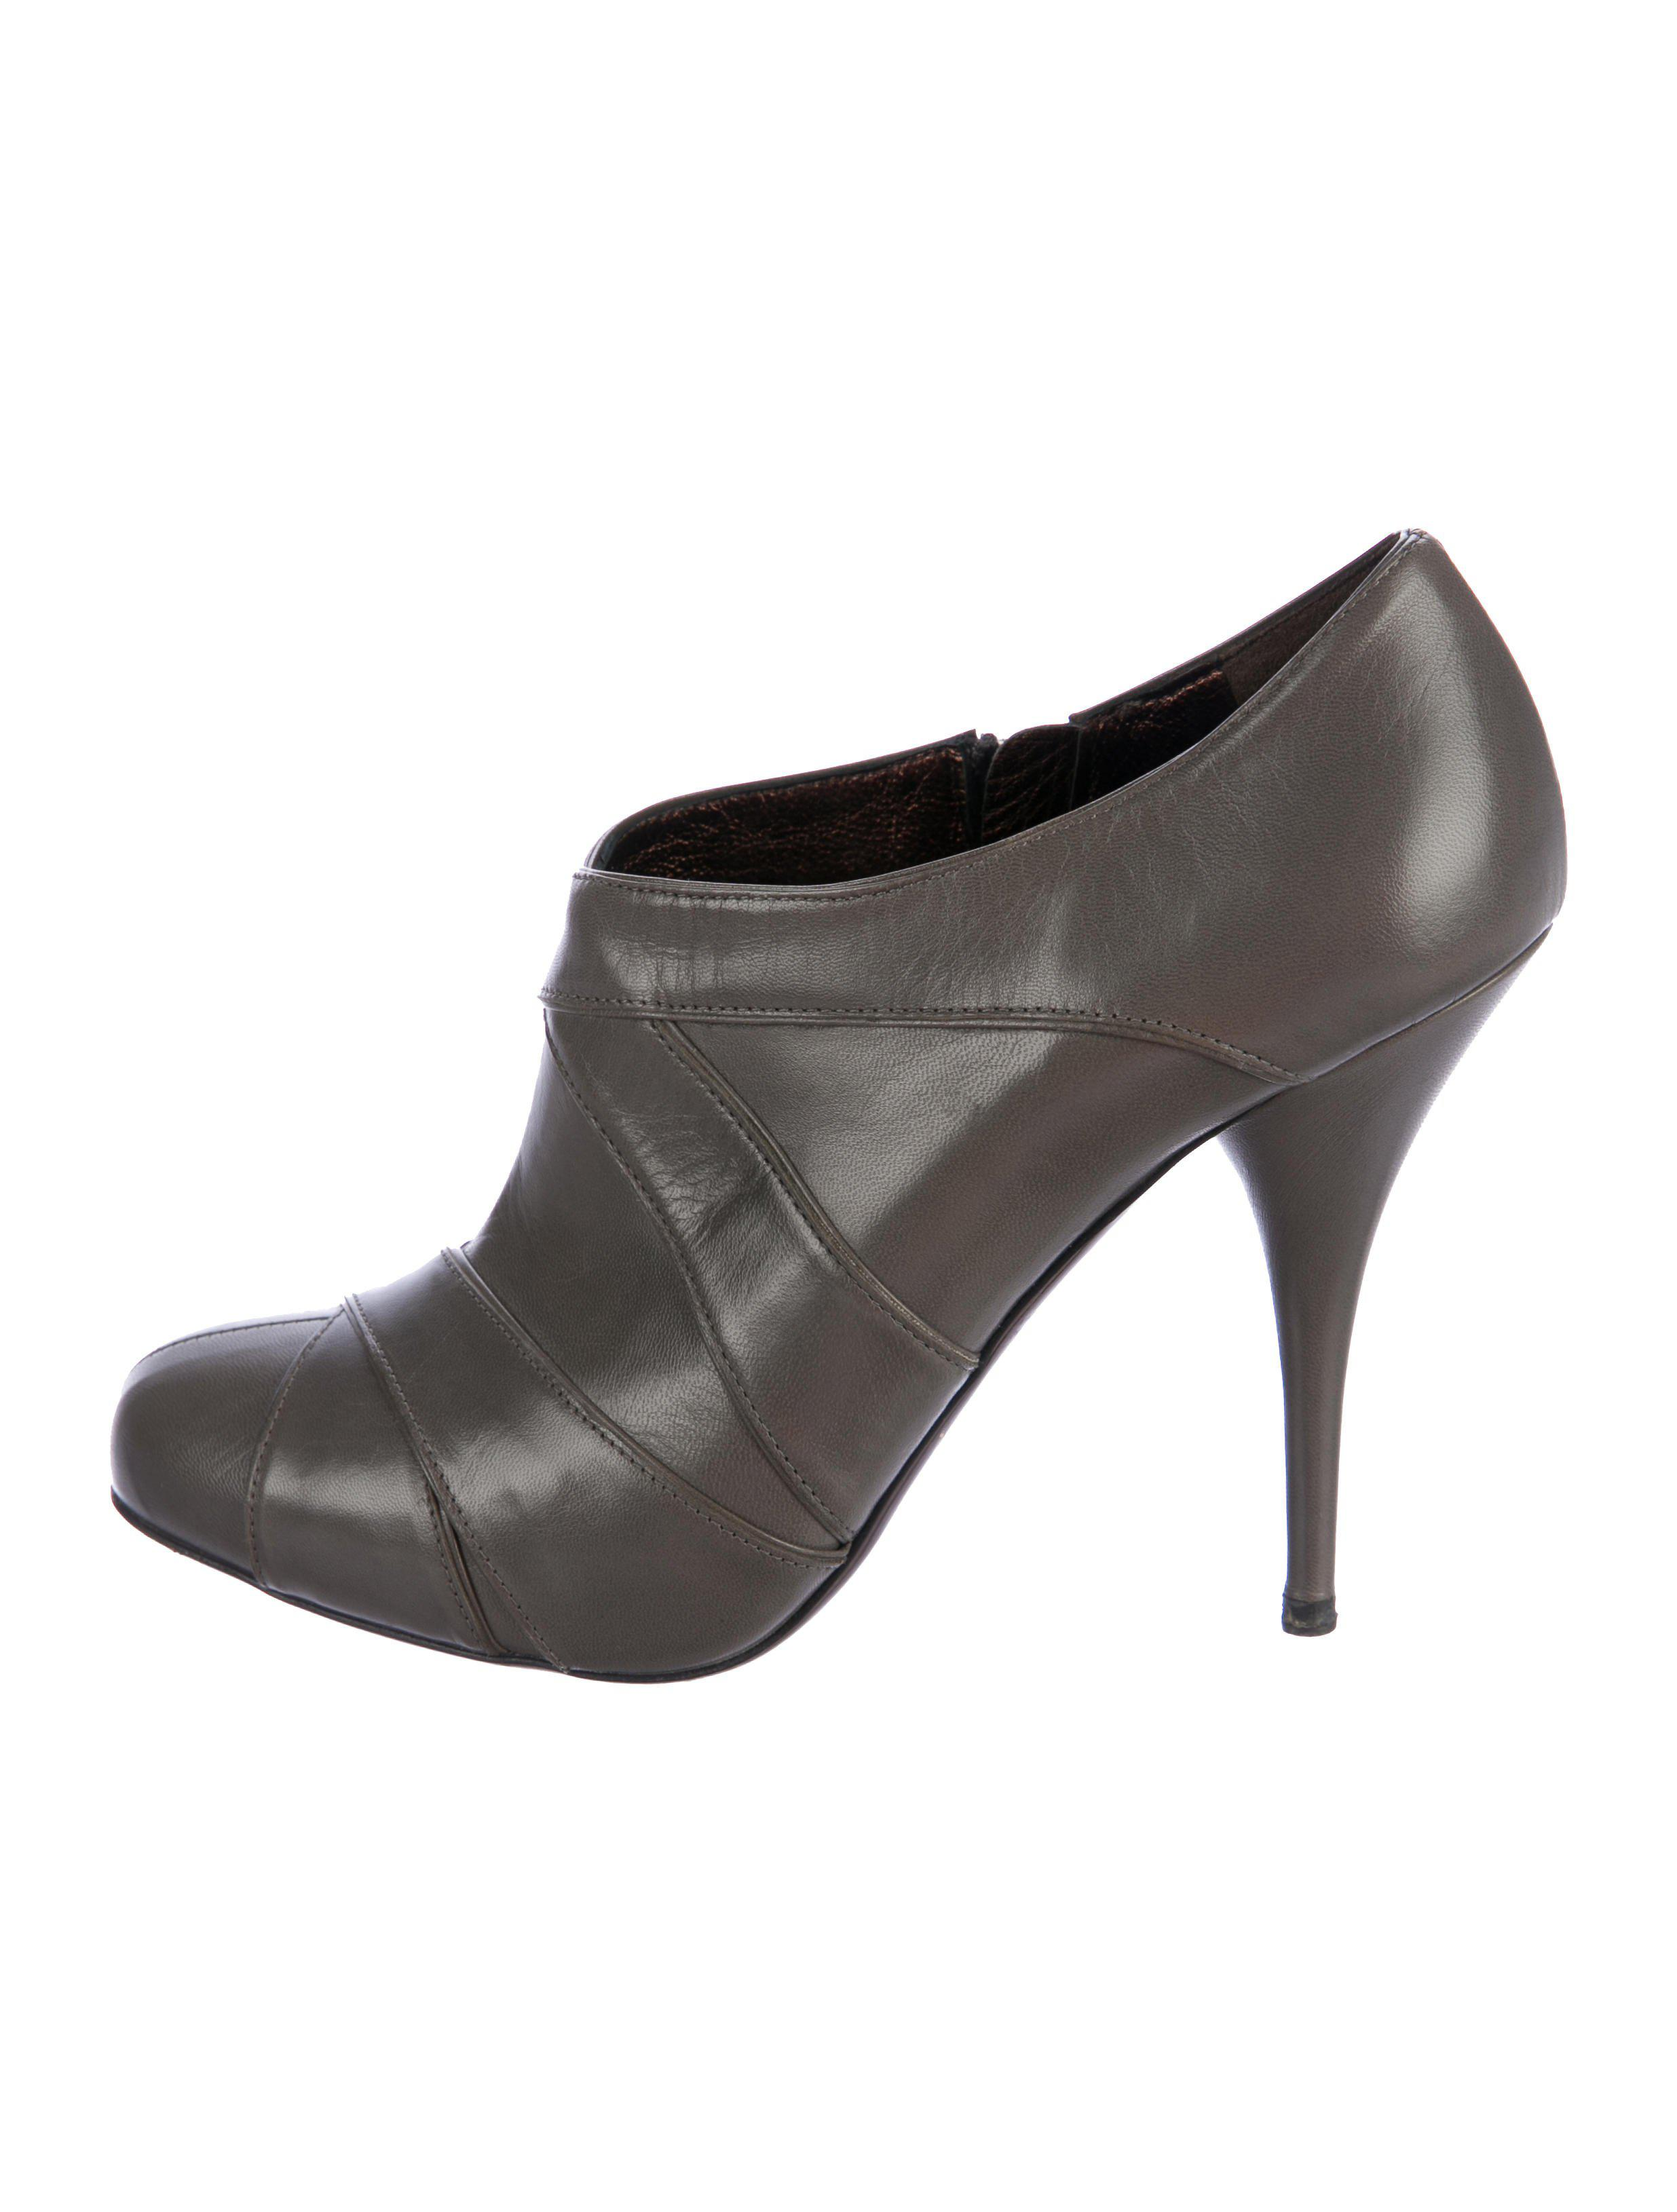 Miu Miu Leather Round-Toe Ankle Boots 2015 new cheap online discount 2015 2014 sale online fowT8